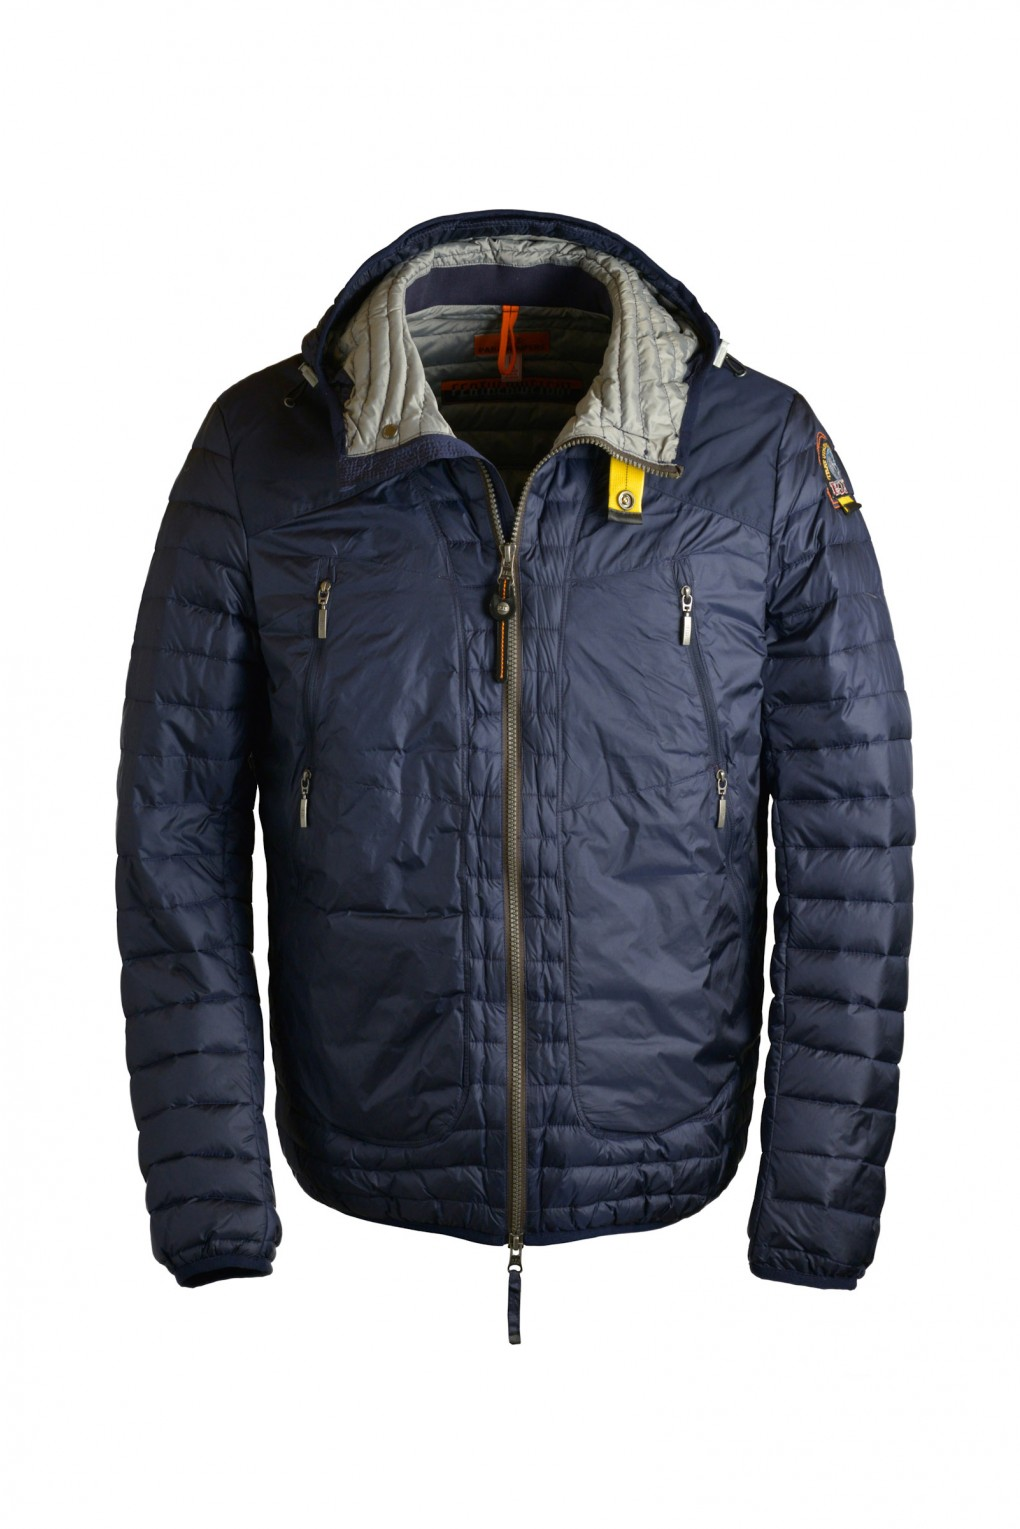 parajumpers ROBY man outerwear Marine